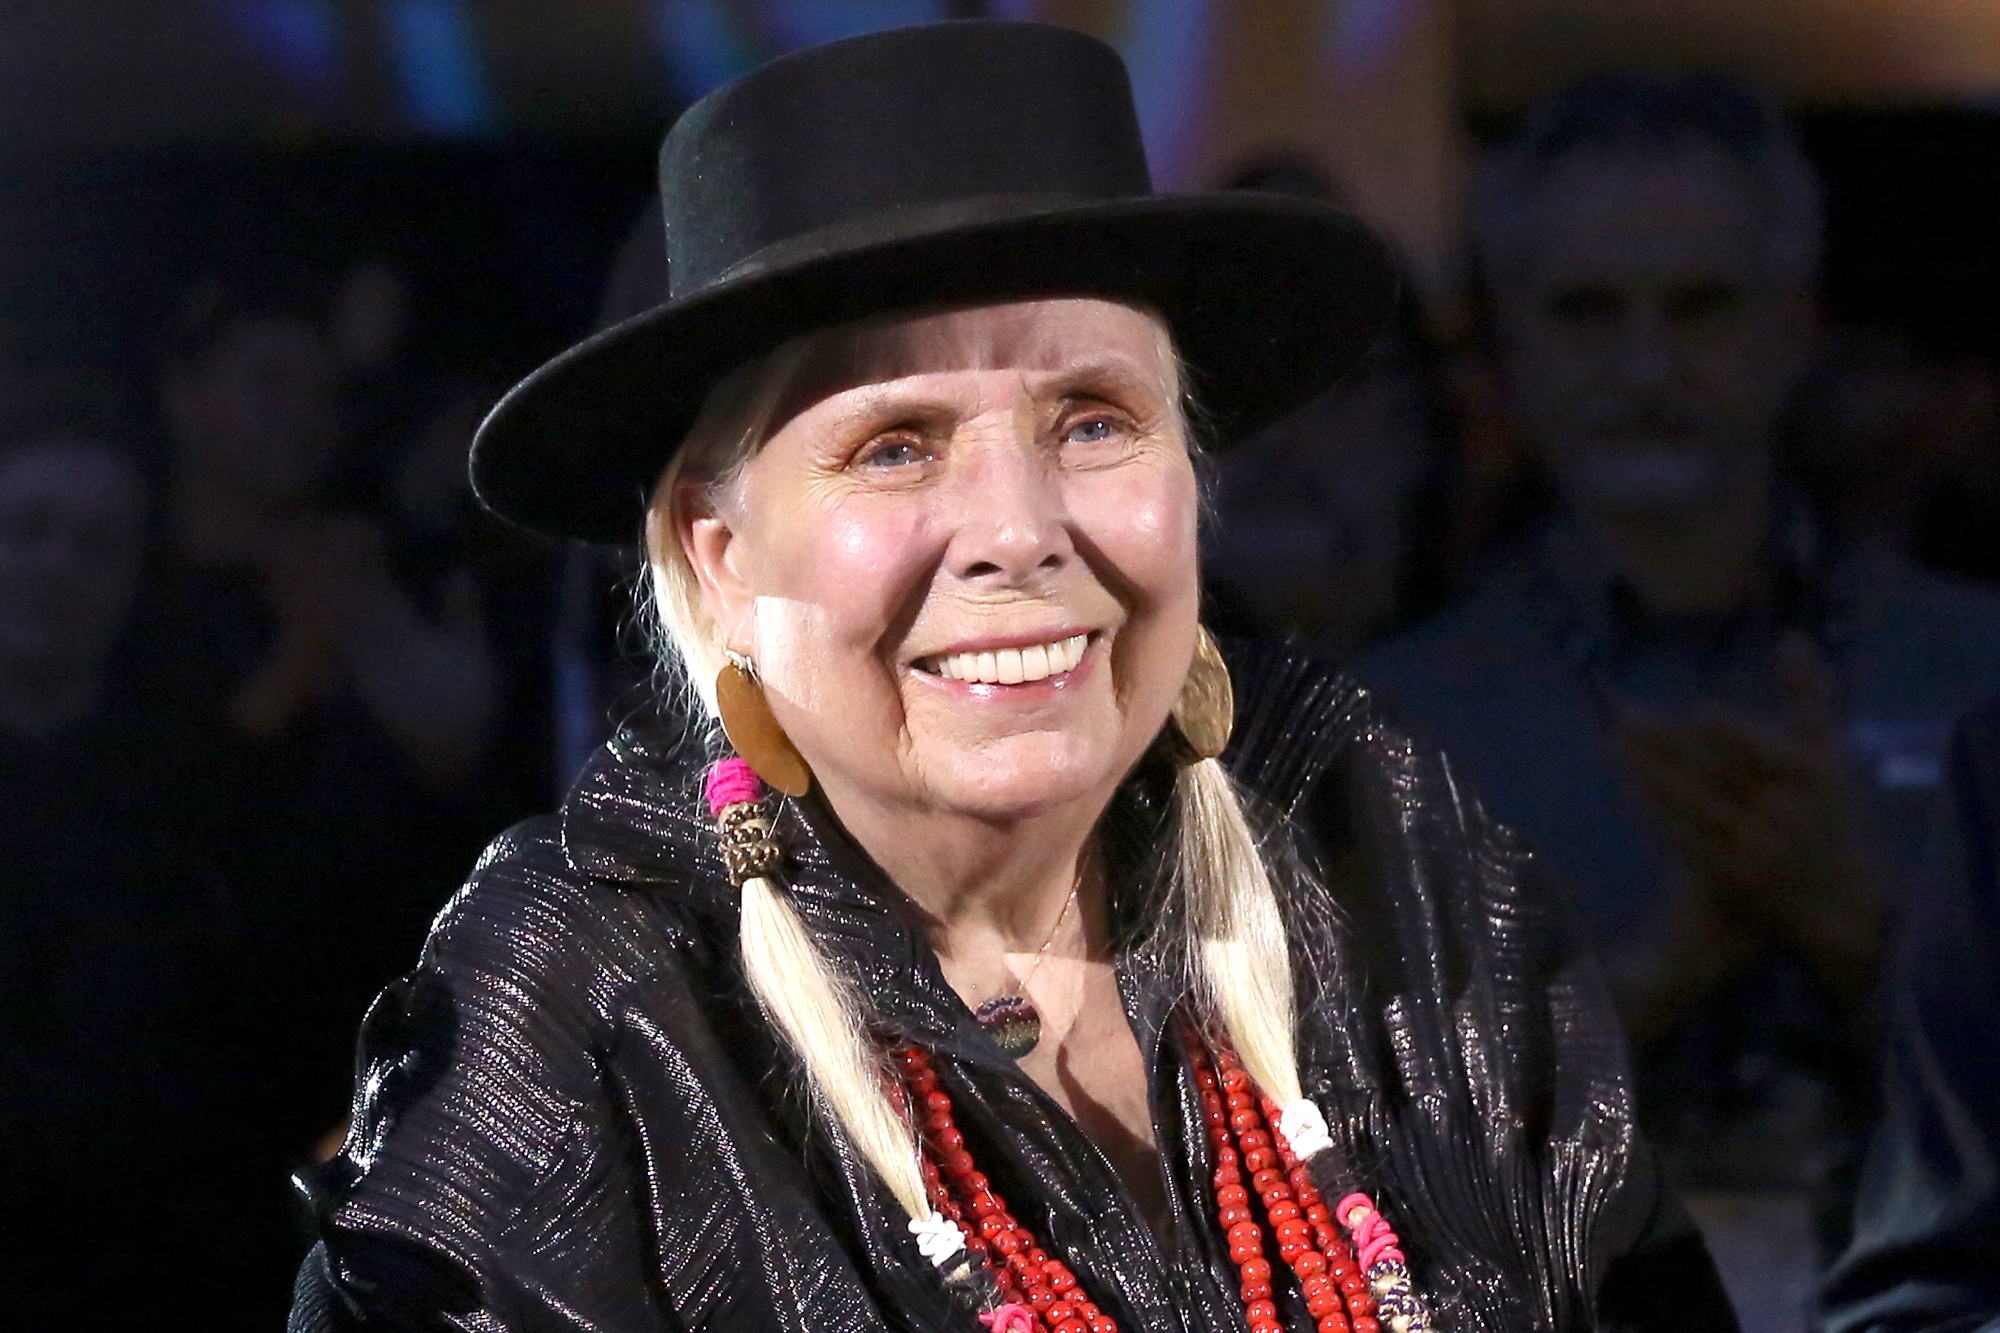 Joni Mitchell says making more personal music 'scared' male singer-songwriters